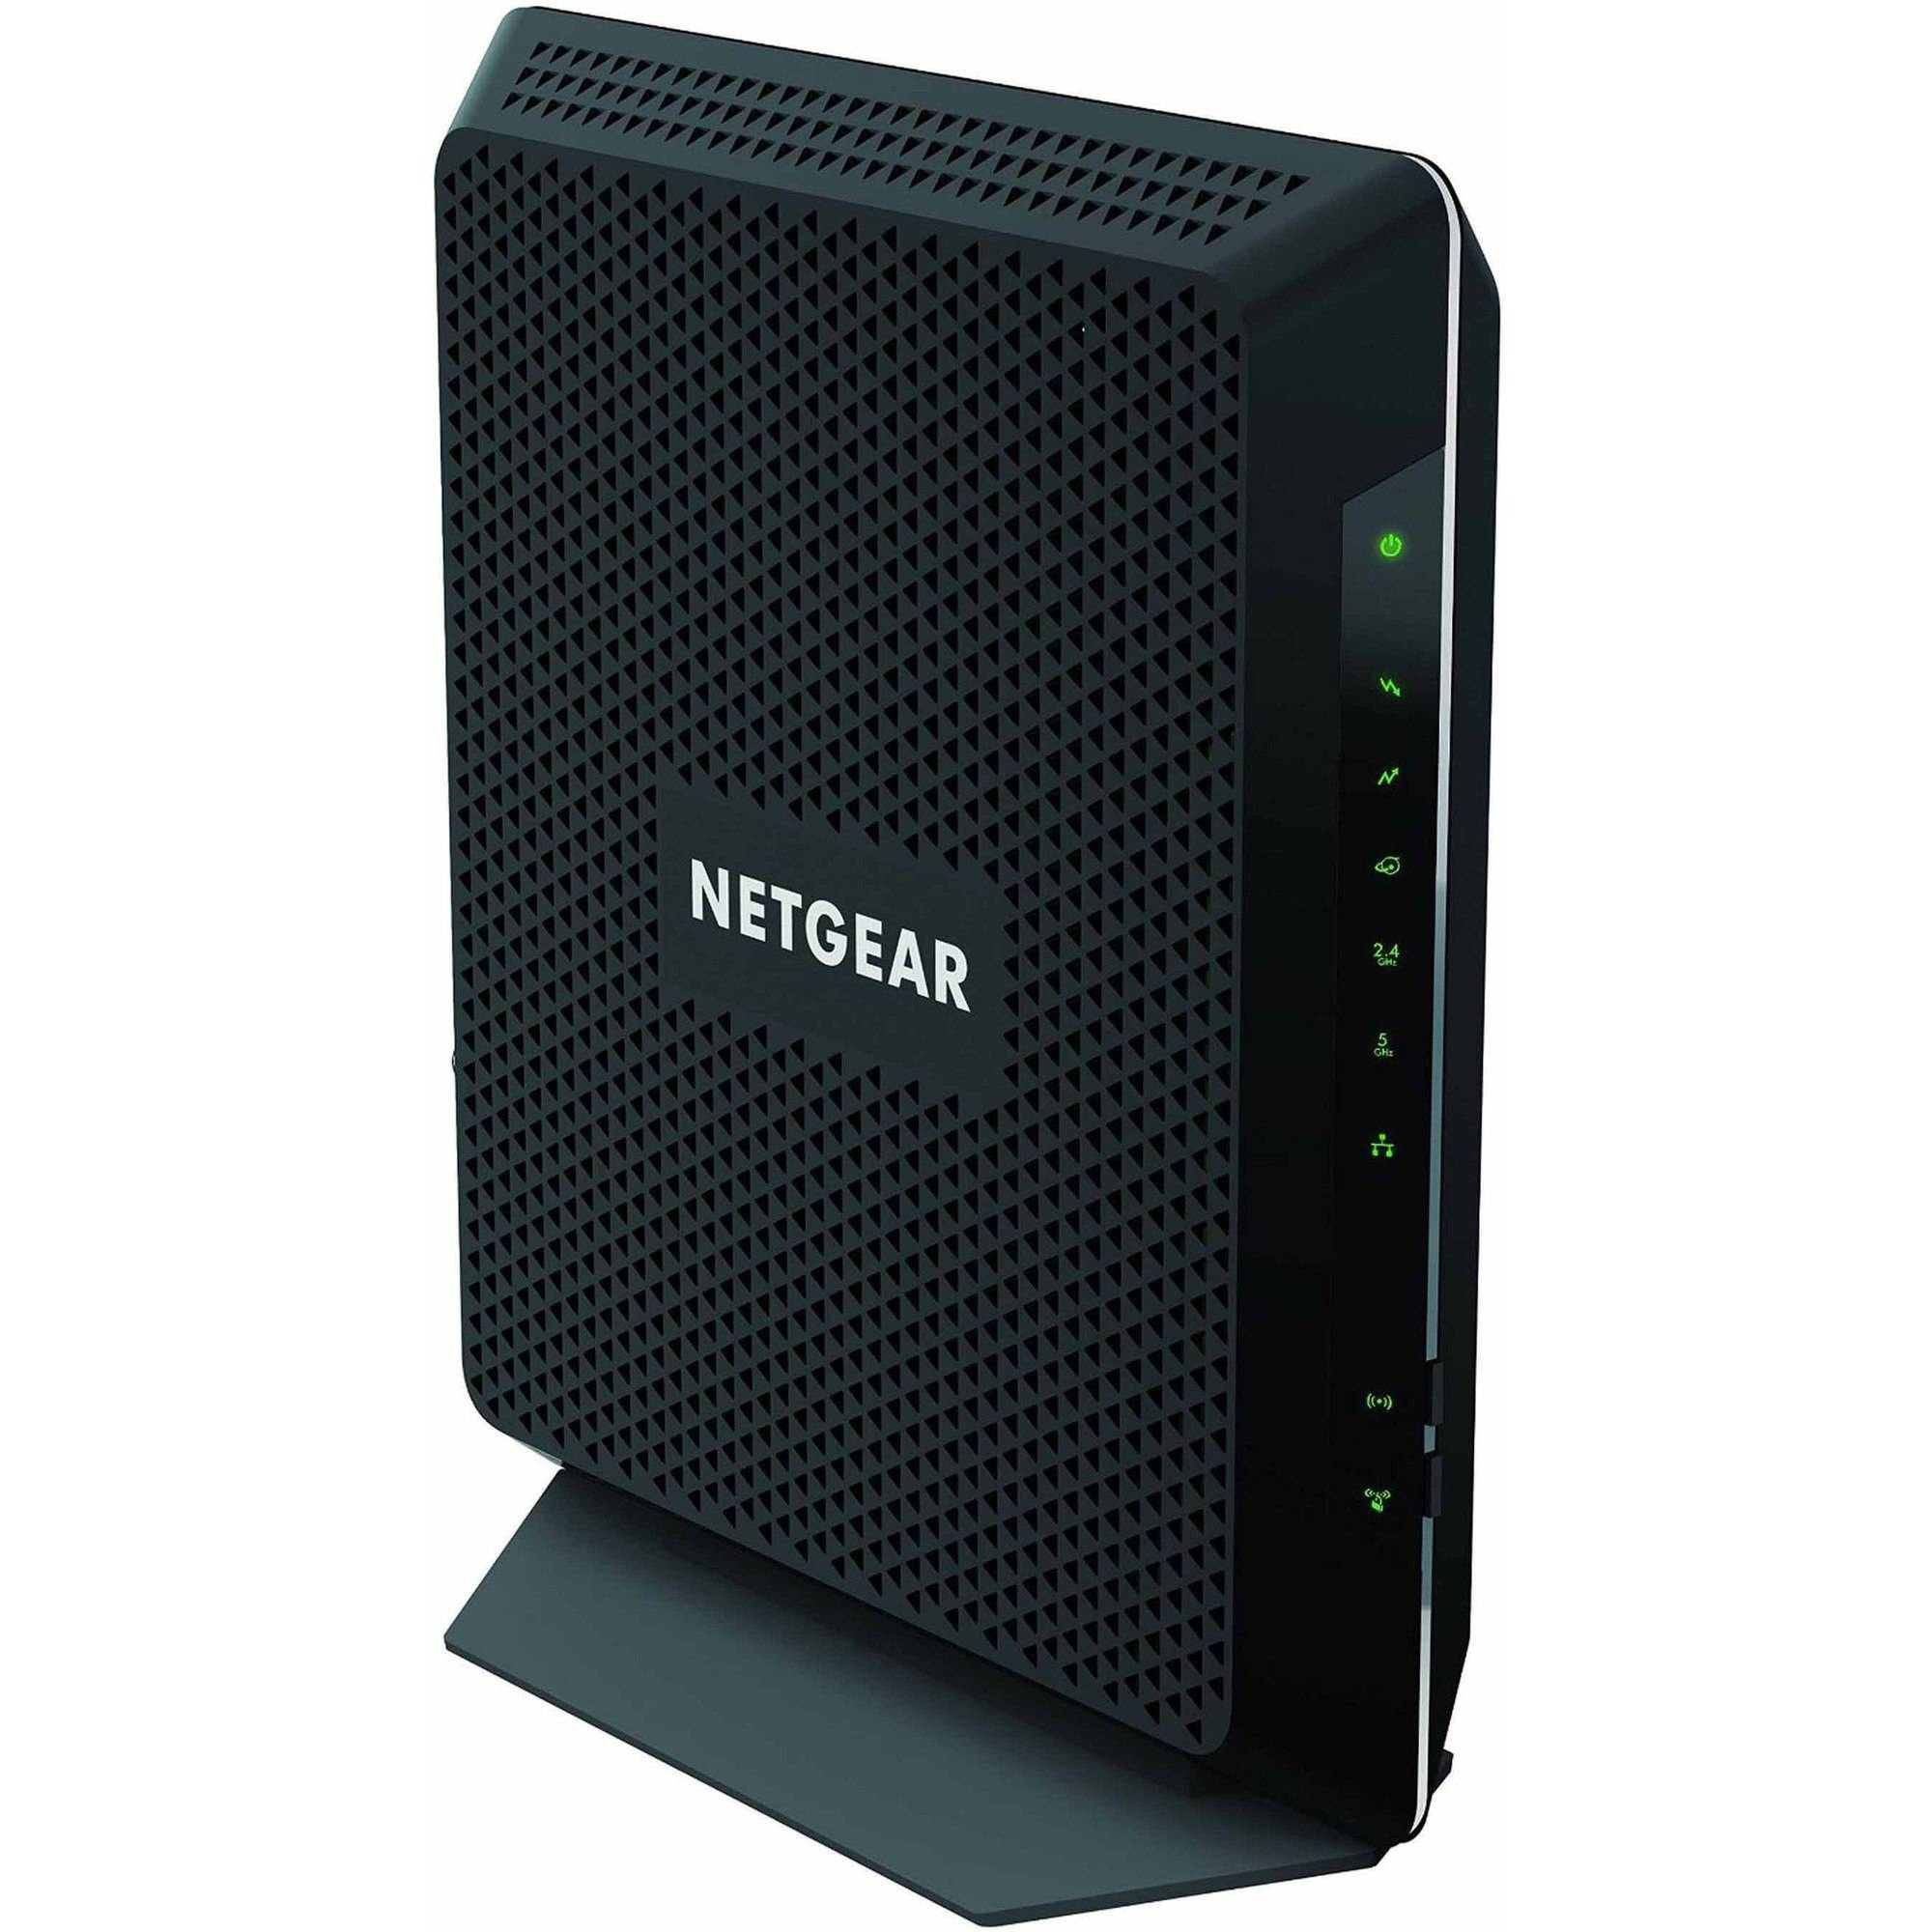 NETGEAR AC1900 Nighthawk WiFi Cable Modem Router (C7000)